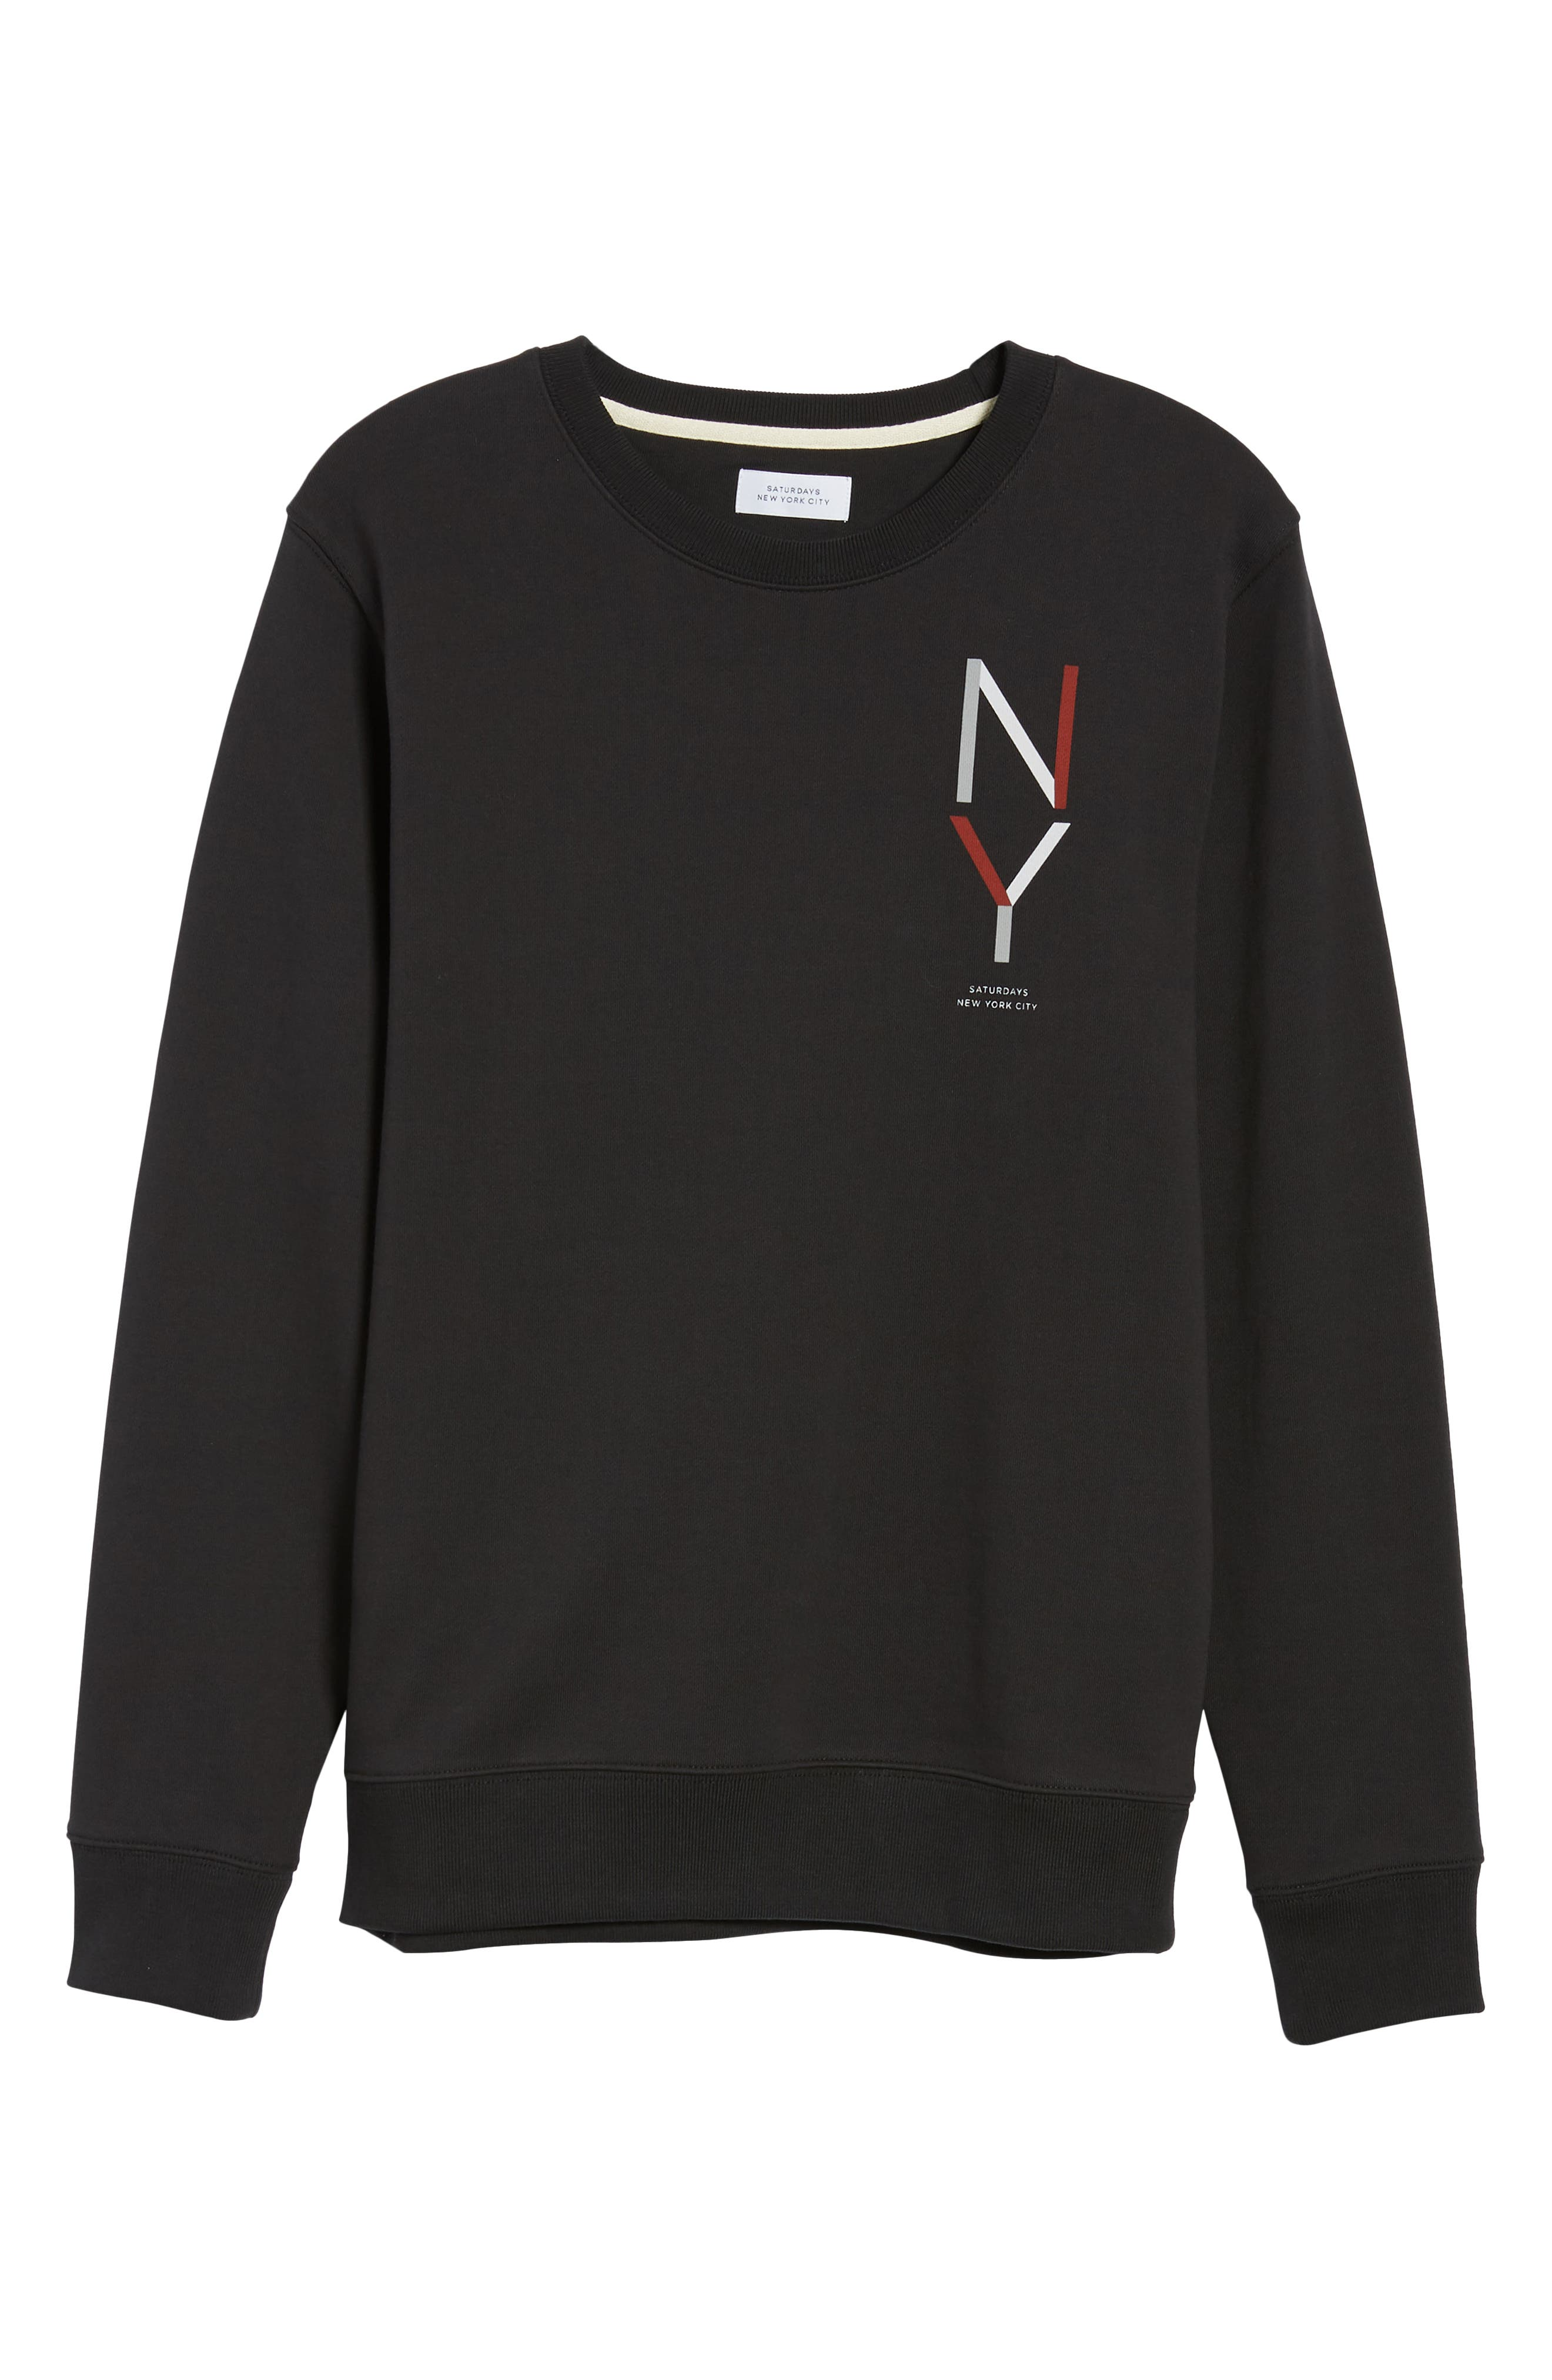 Bowery NY Sweatshirt,                             Alternate thumbnail 6, color,                             Black